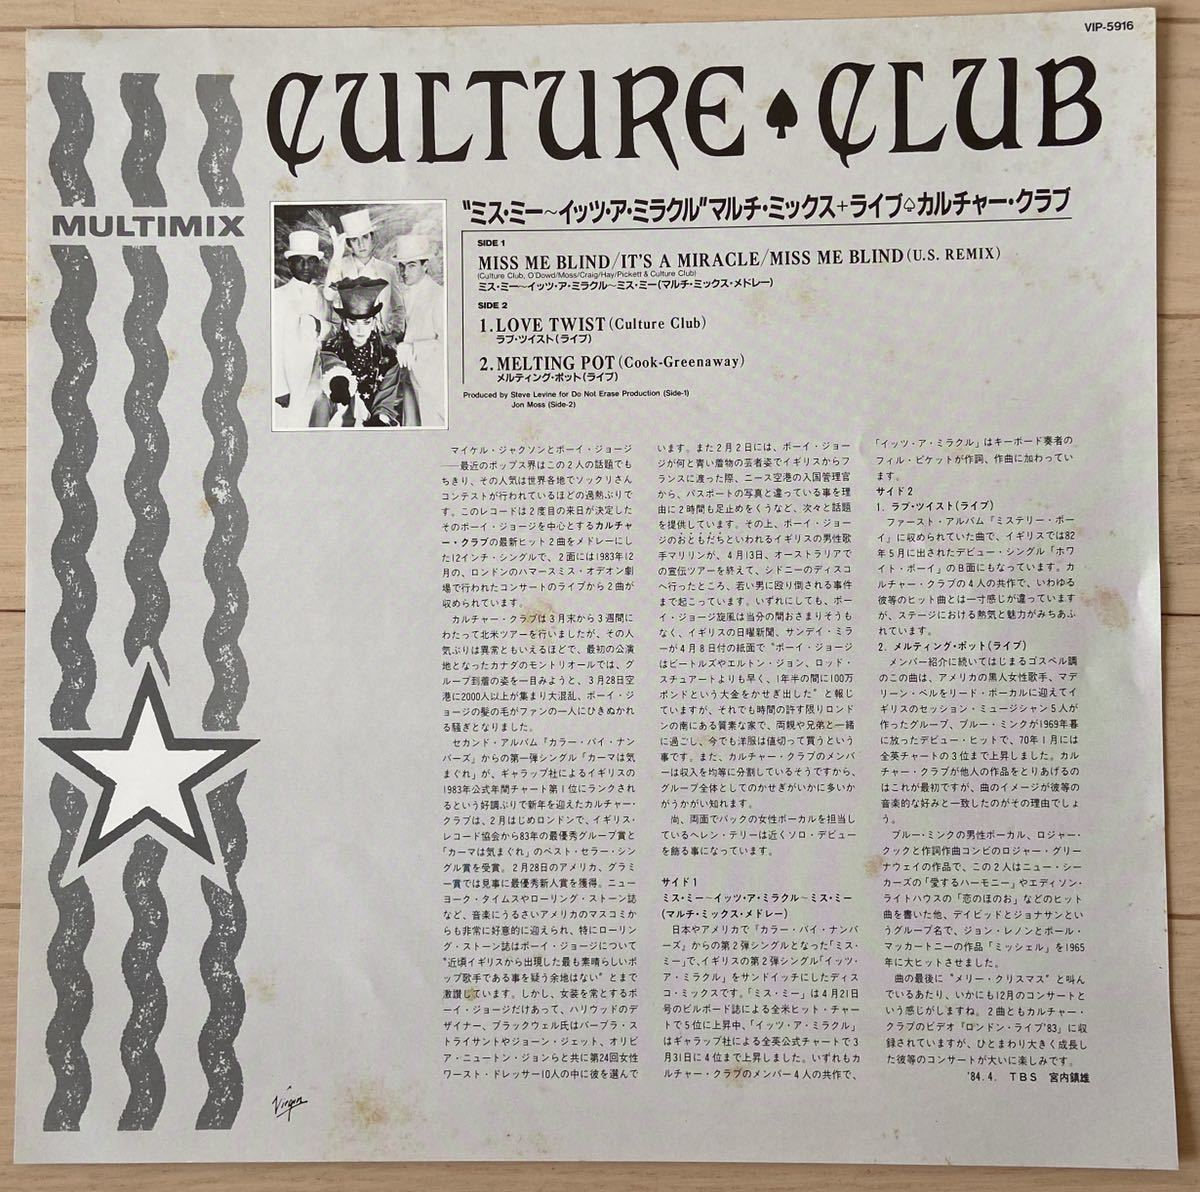 ITS A MIRACLE / MISS ME BLIND ミス ミー~イッツ ア ミラクル マルチミックス+ライブ 来日記念盤 CULTURE CLUB カルチャークラブ_画像3